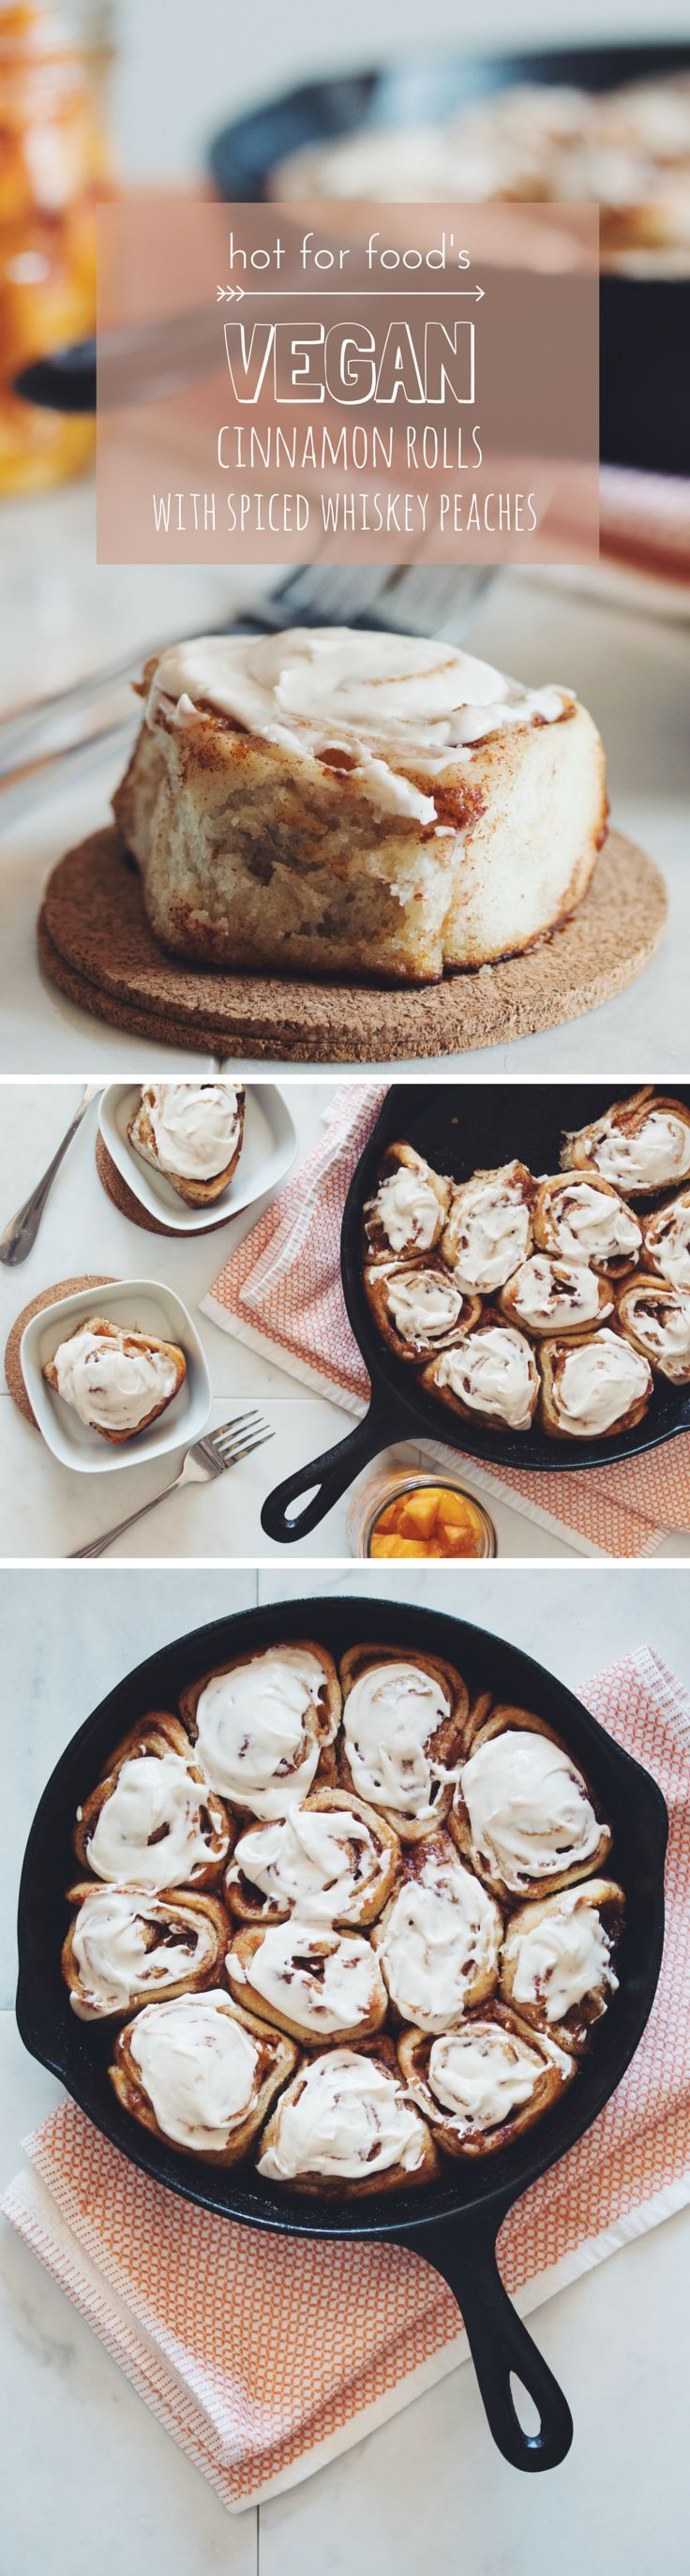 vegan cinnamon rolls with spiced whiskey peaches and vanilla frosting | RECIPE on http://hotforfoodblog.com